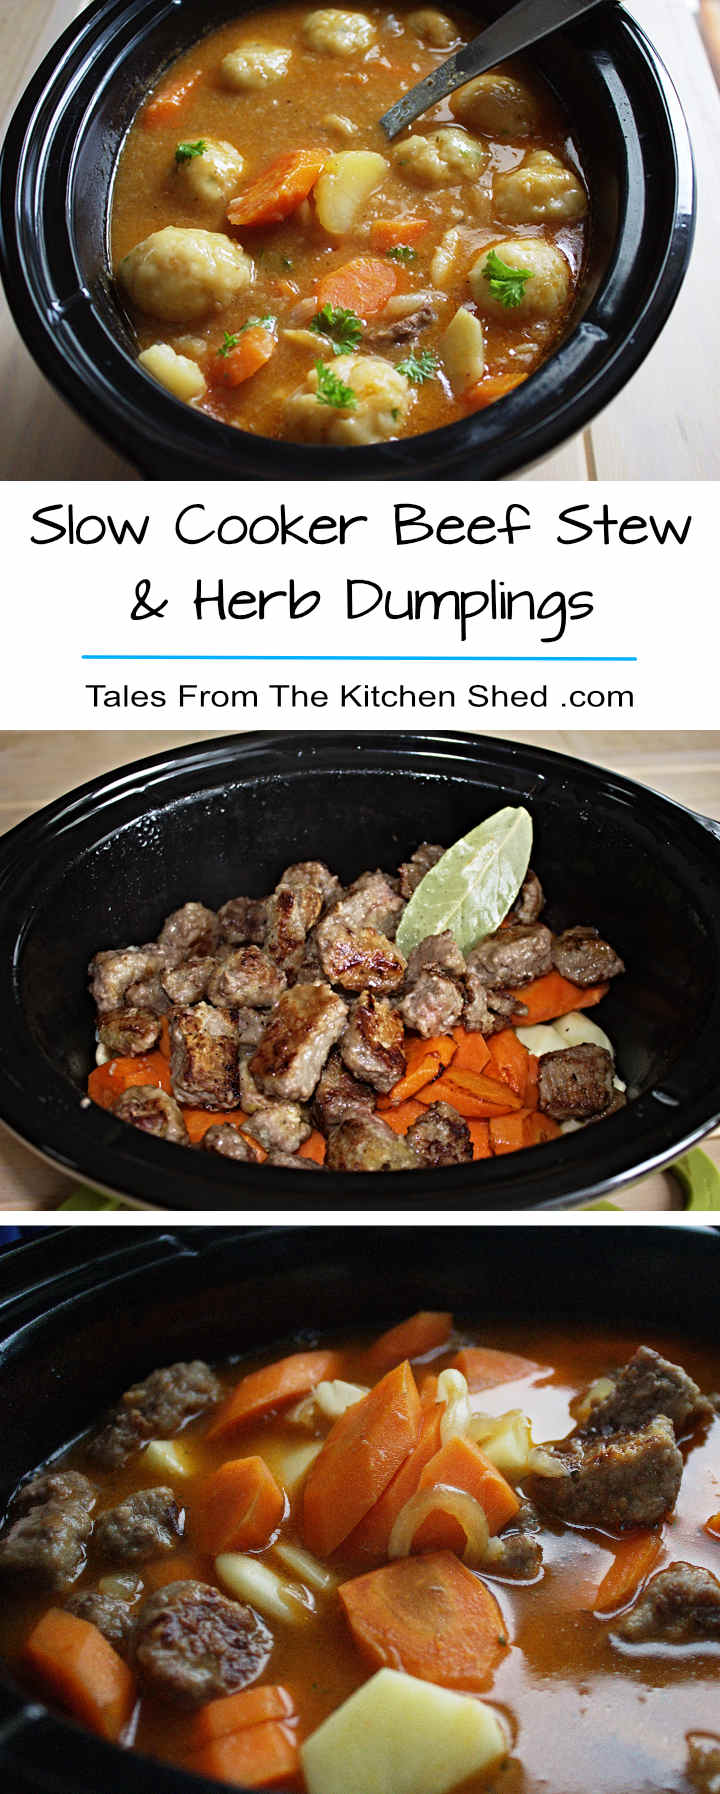 Slow Cooker Beef Stew Herb Dumplings Tales From The Kitchen Shed